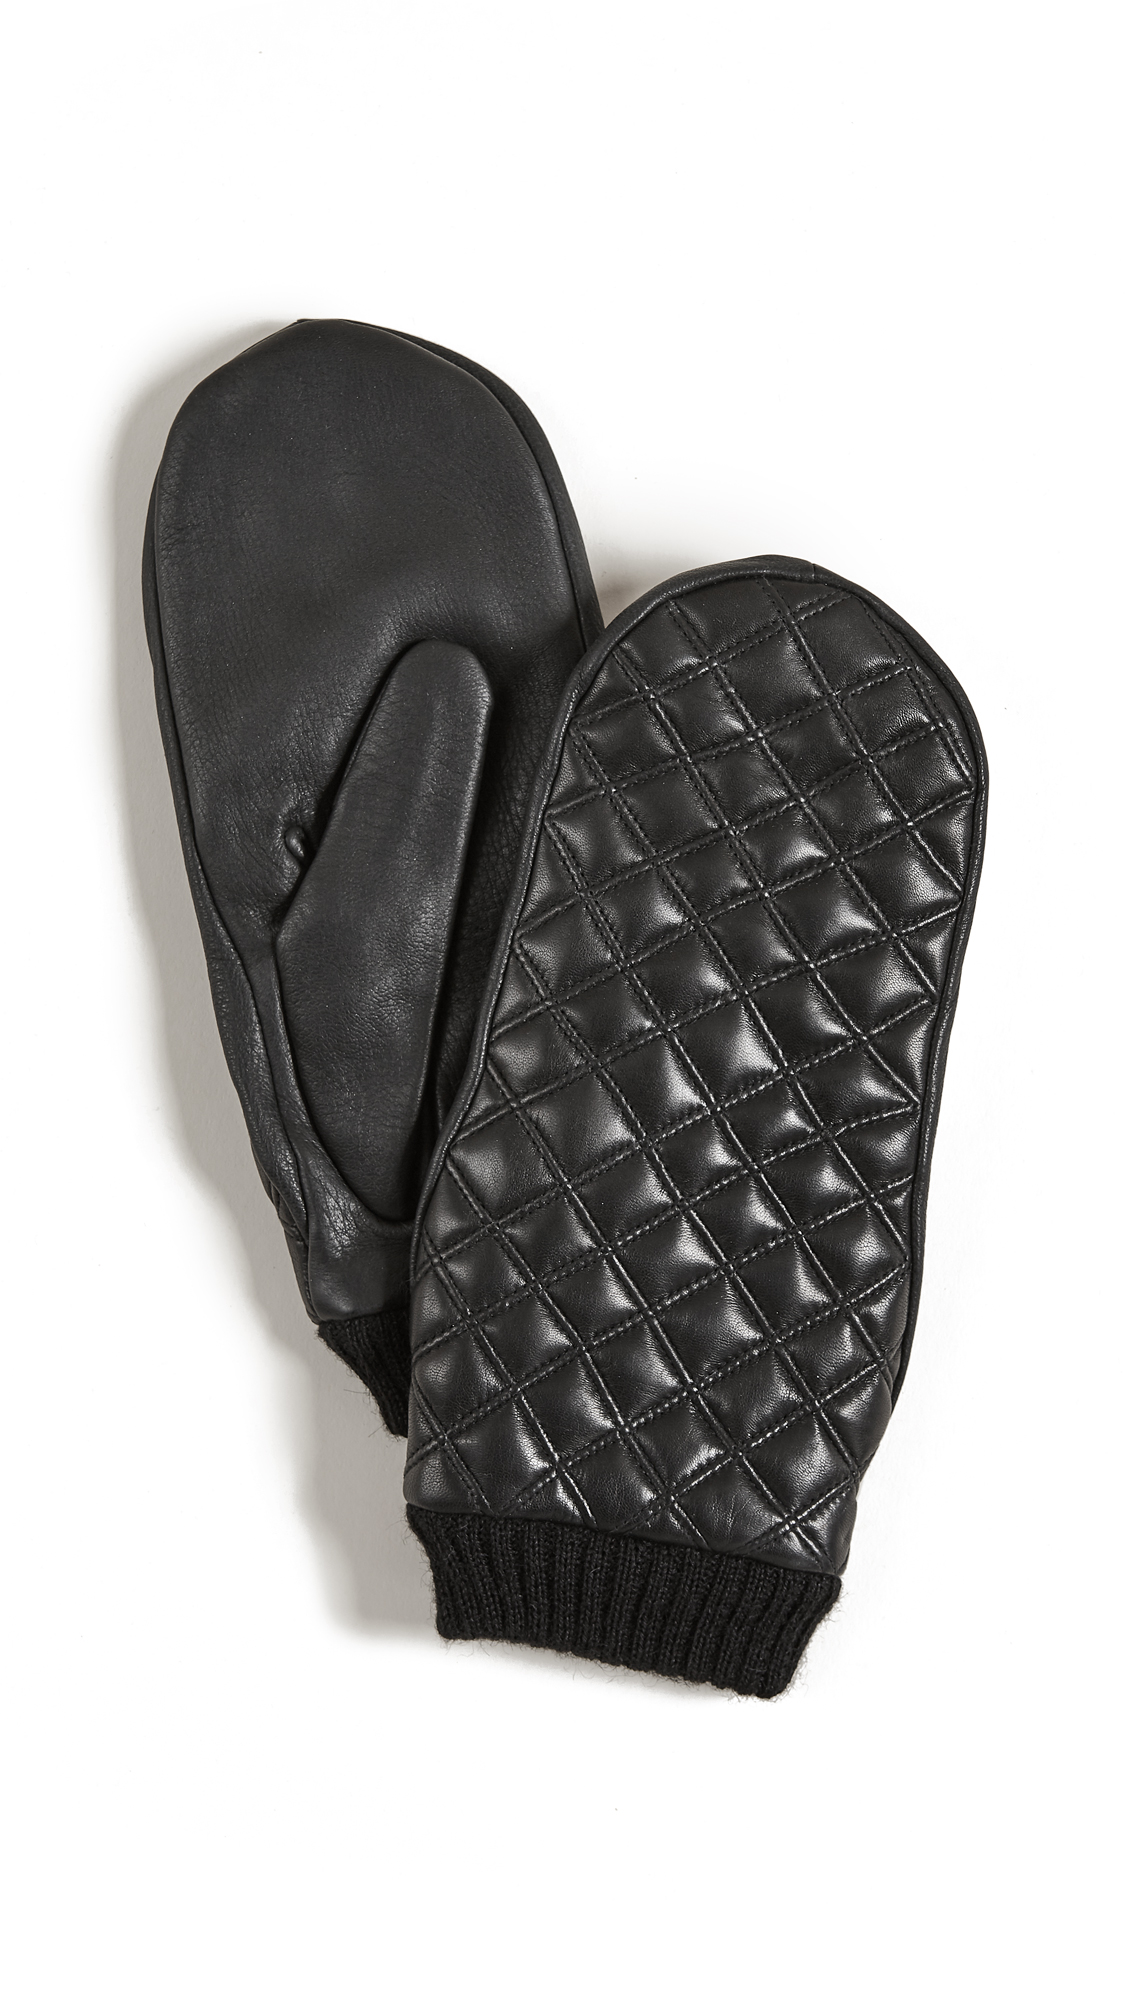 Agnelle Quilted Leather Mittens - Black